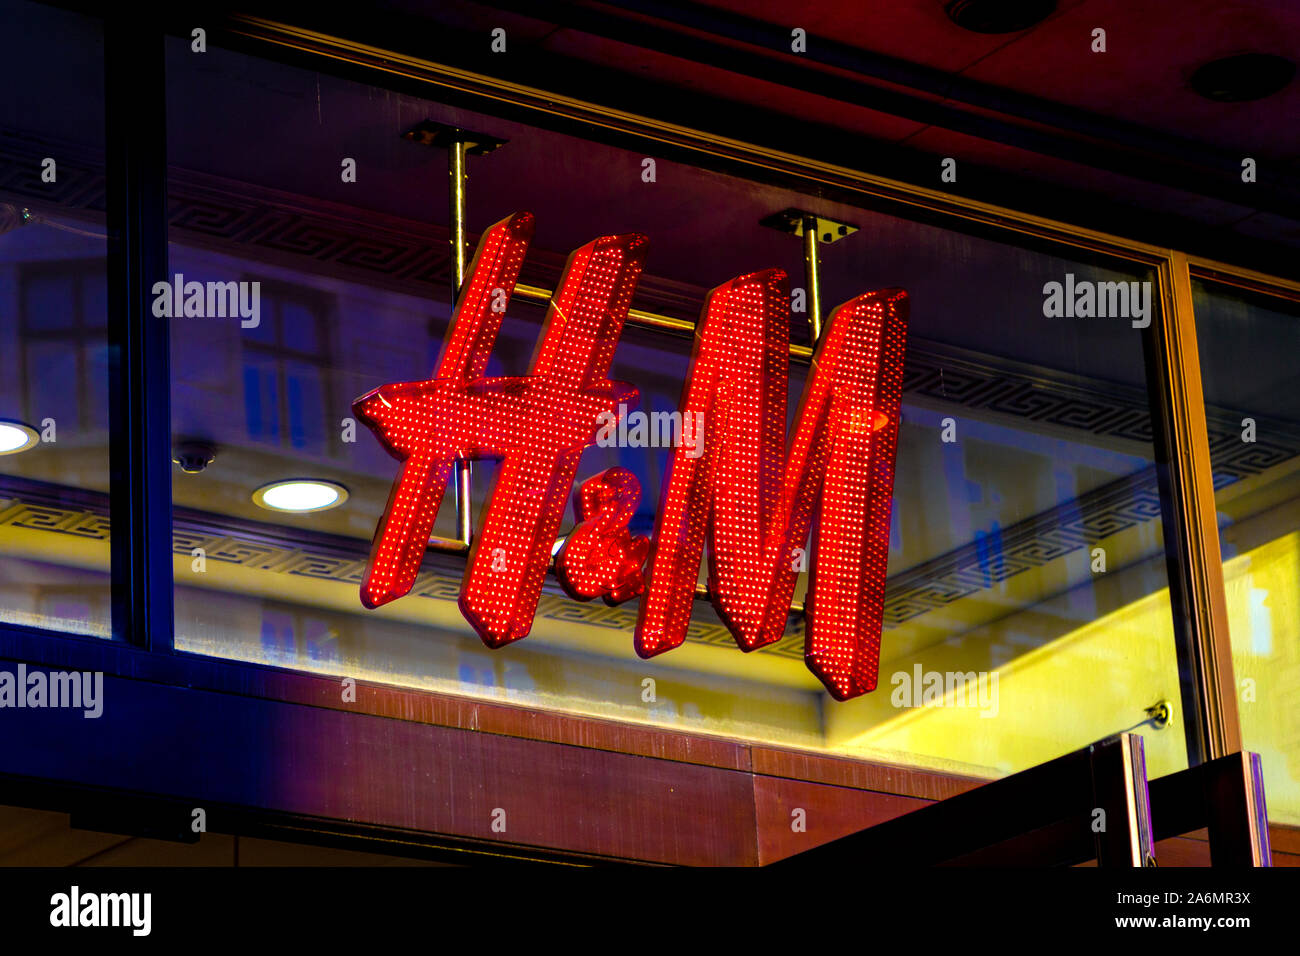 Lit up sign for the fashion retail giant H&M in Regent Street, London, UK Stock Photo